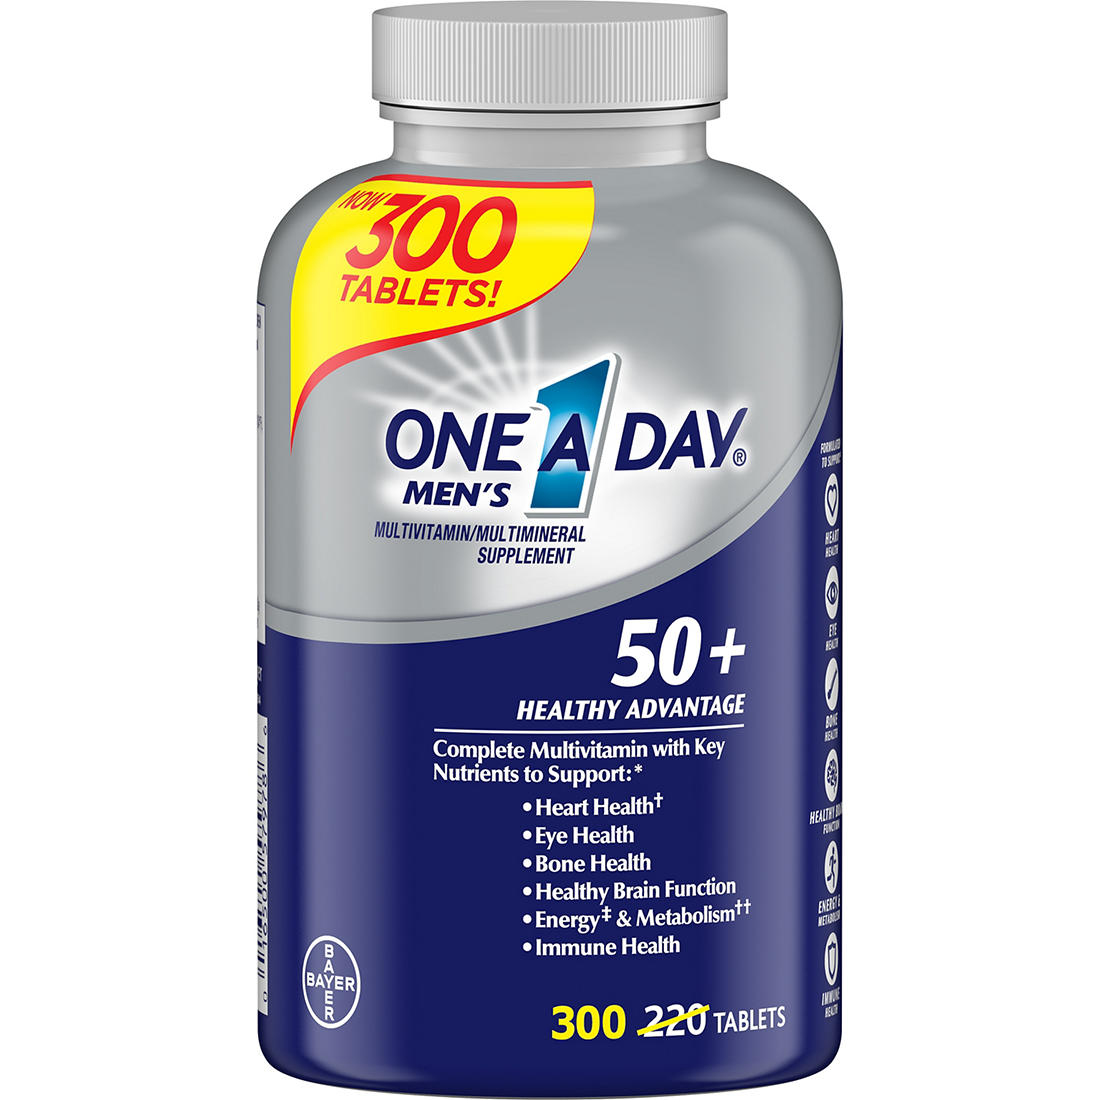 One A Day Men's Multivitamin and Multimineral Supplement, 300 ct